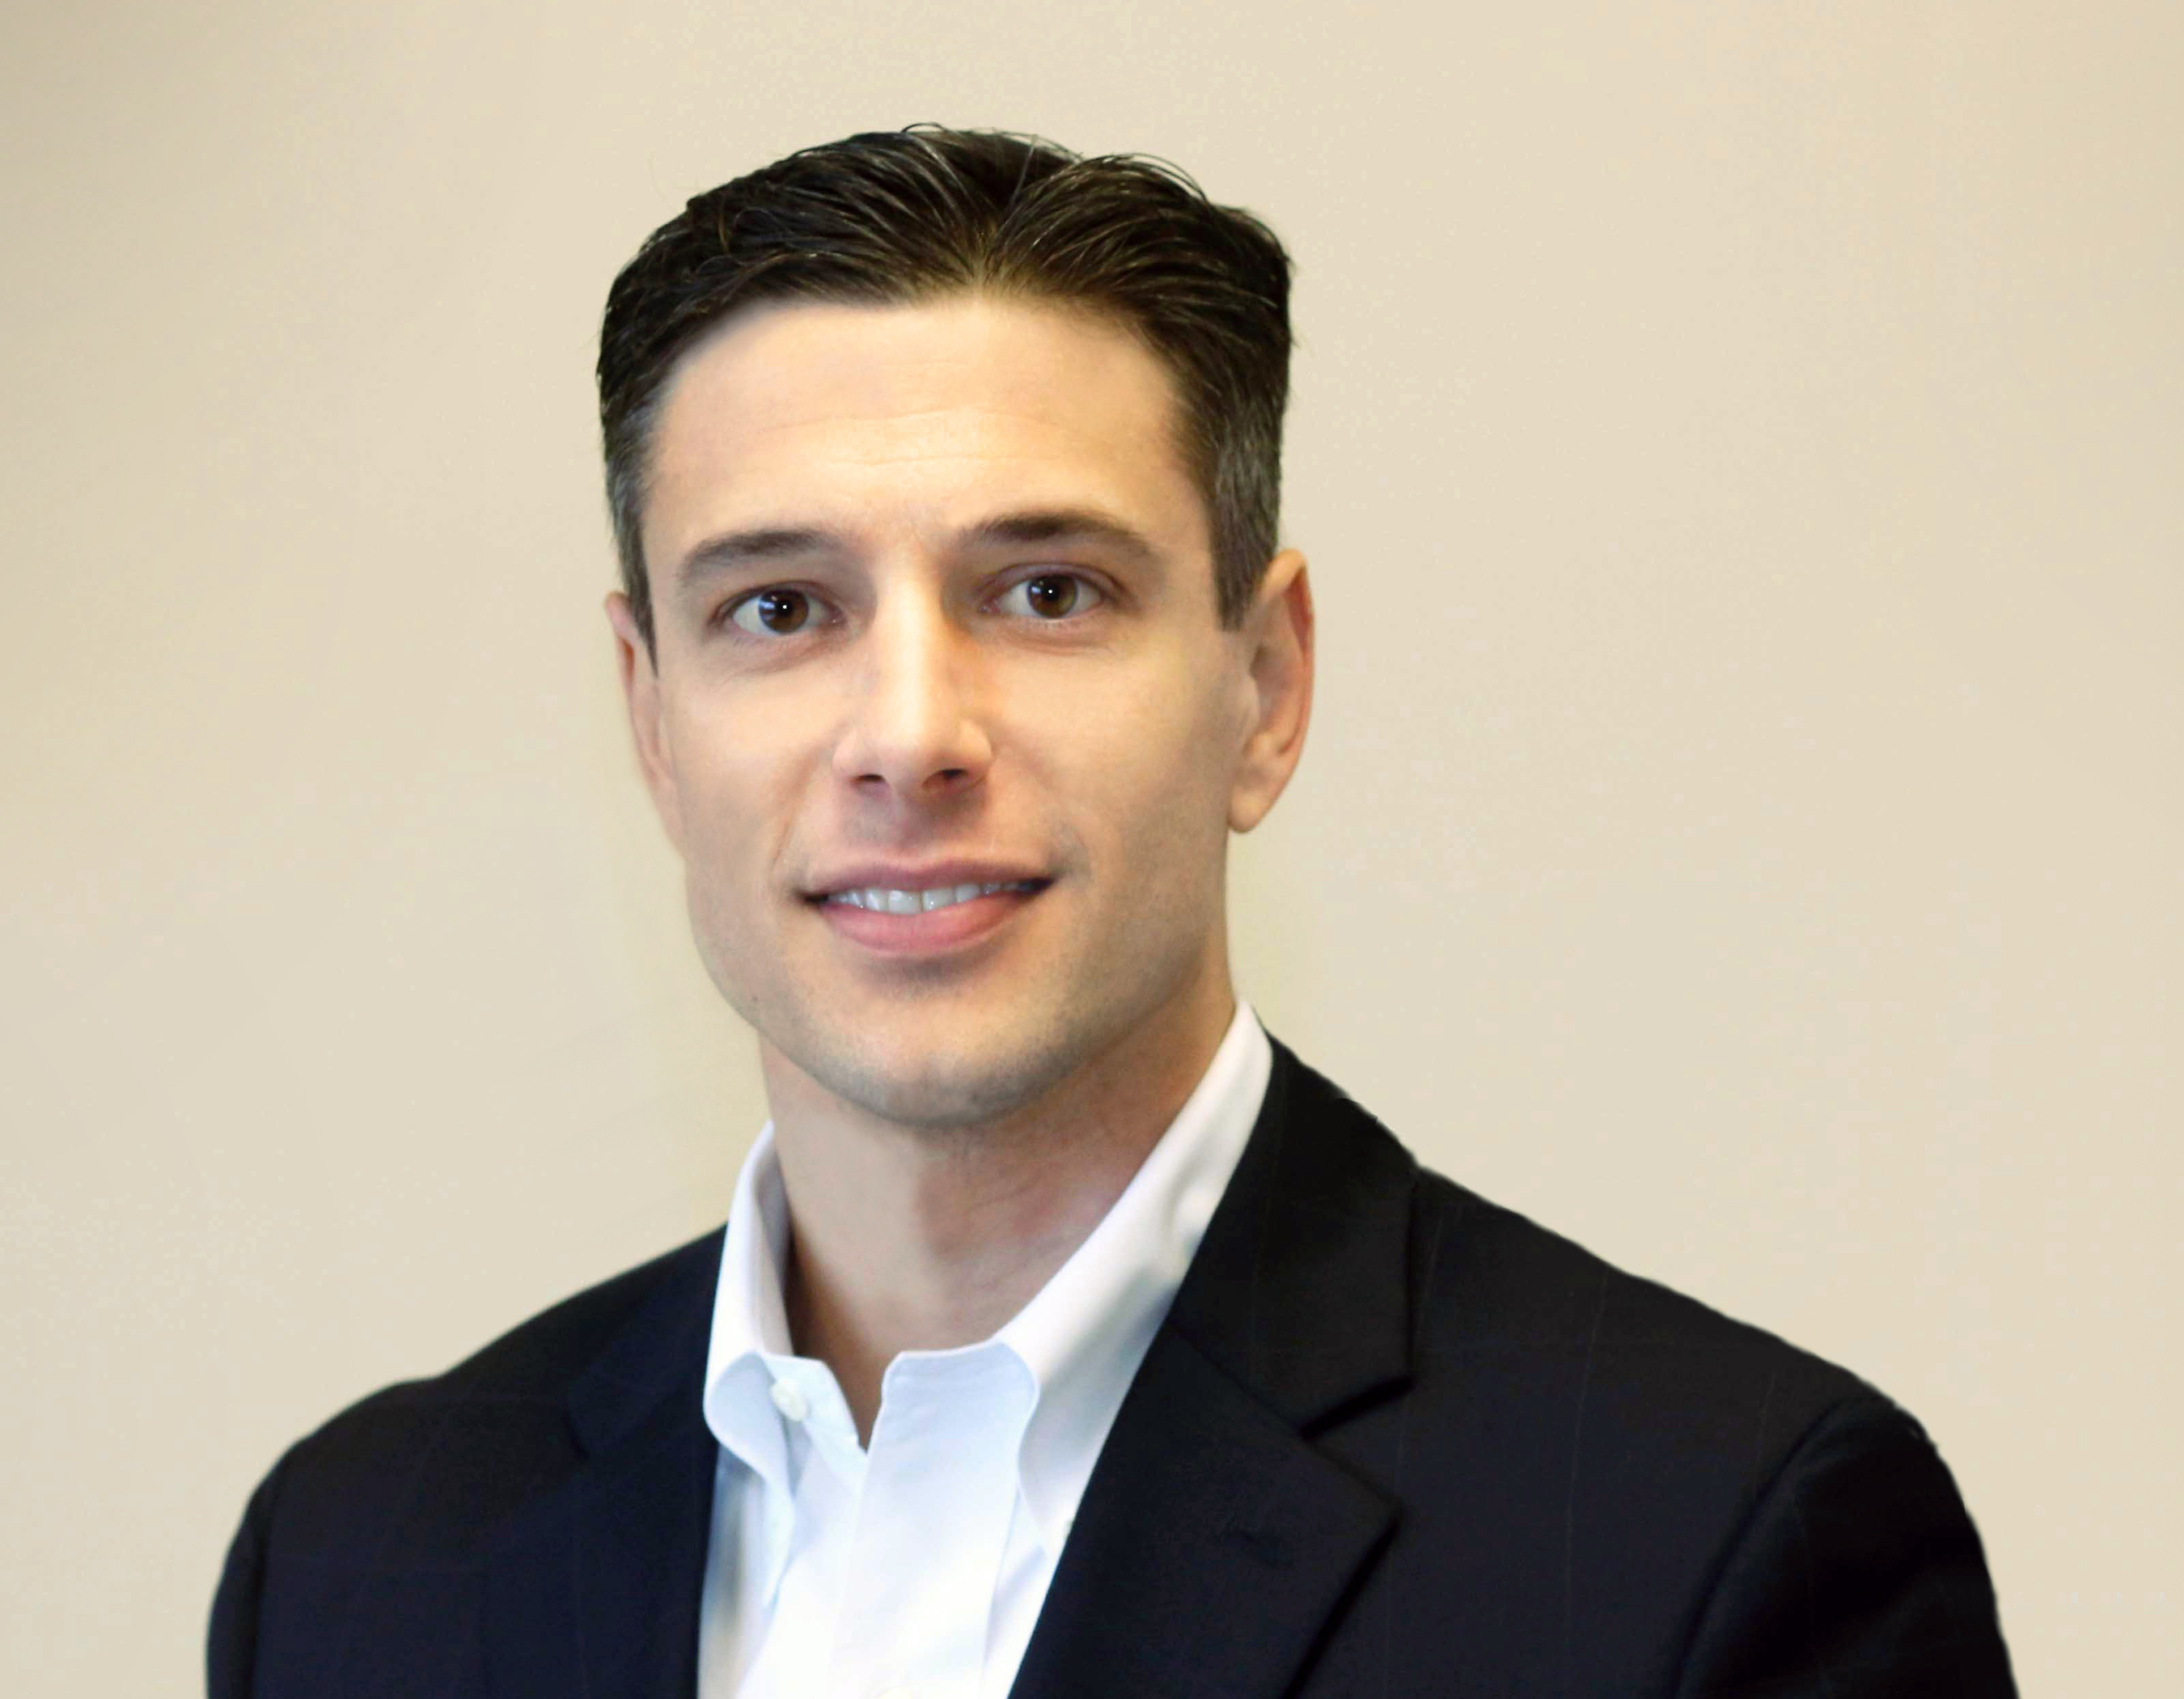 Kurt Angstadt, financial advisor Cherry Hill NJ